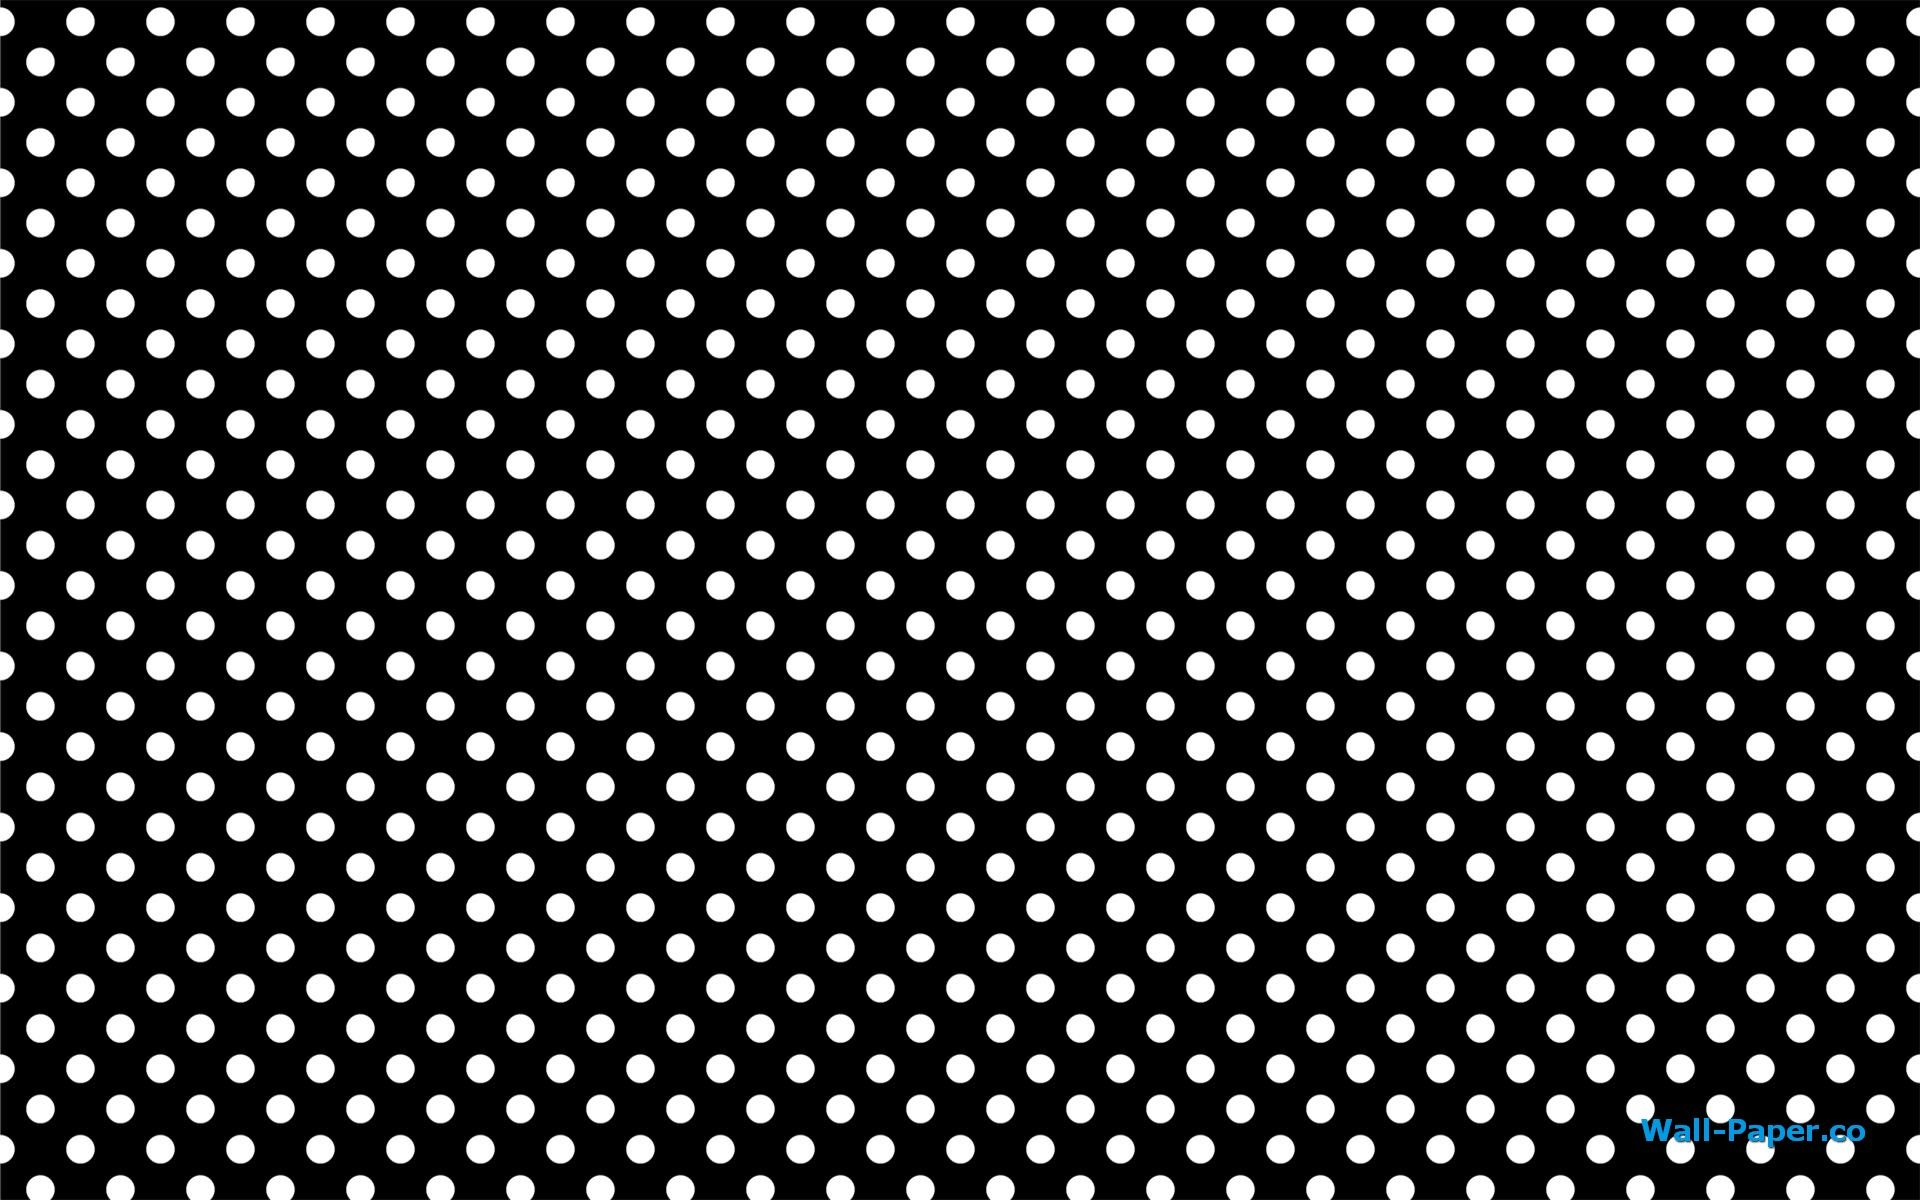 Polkadots Polka dots wallpaper, Gold polka dot wallpaper